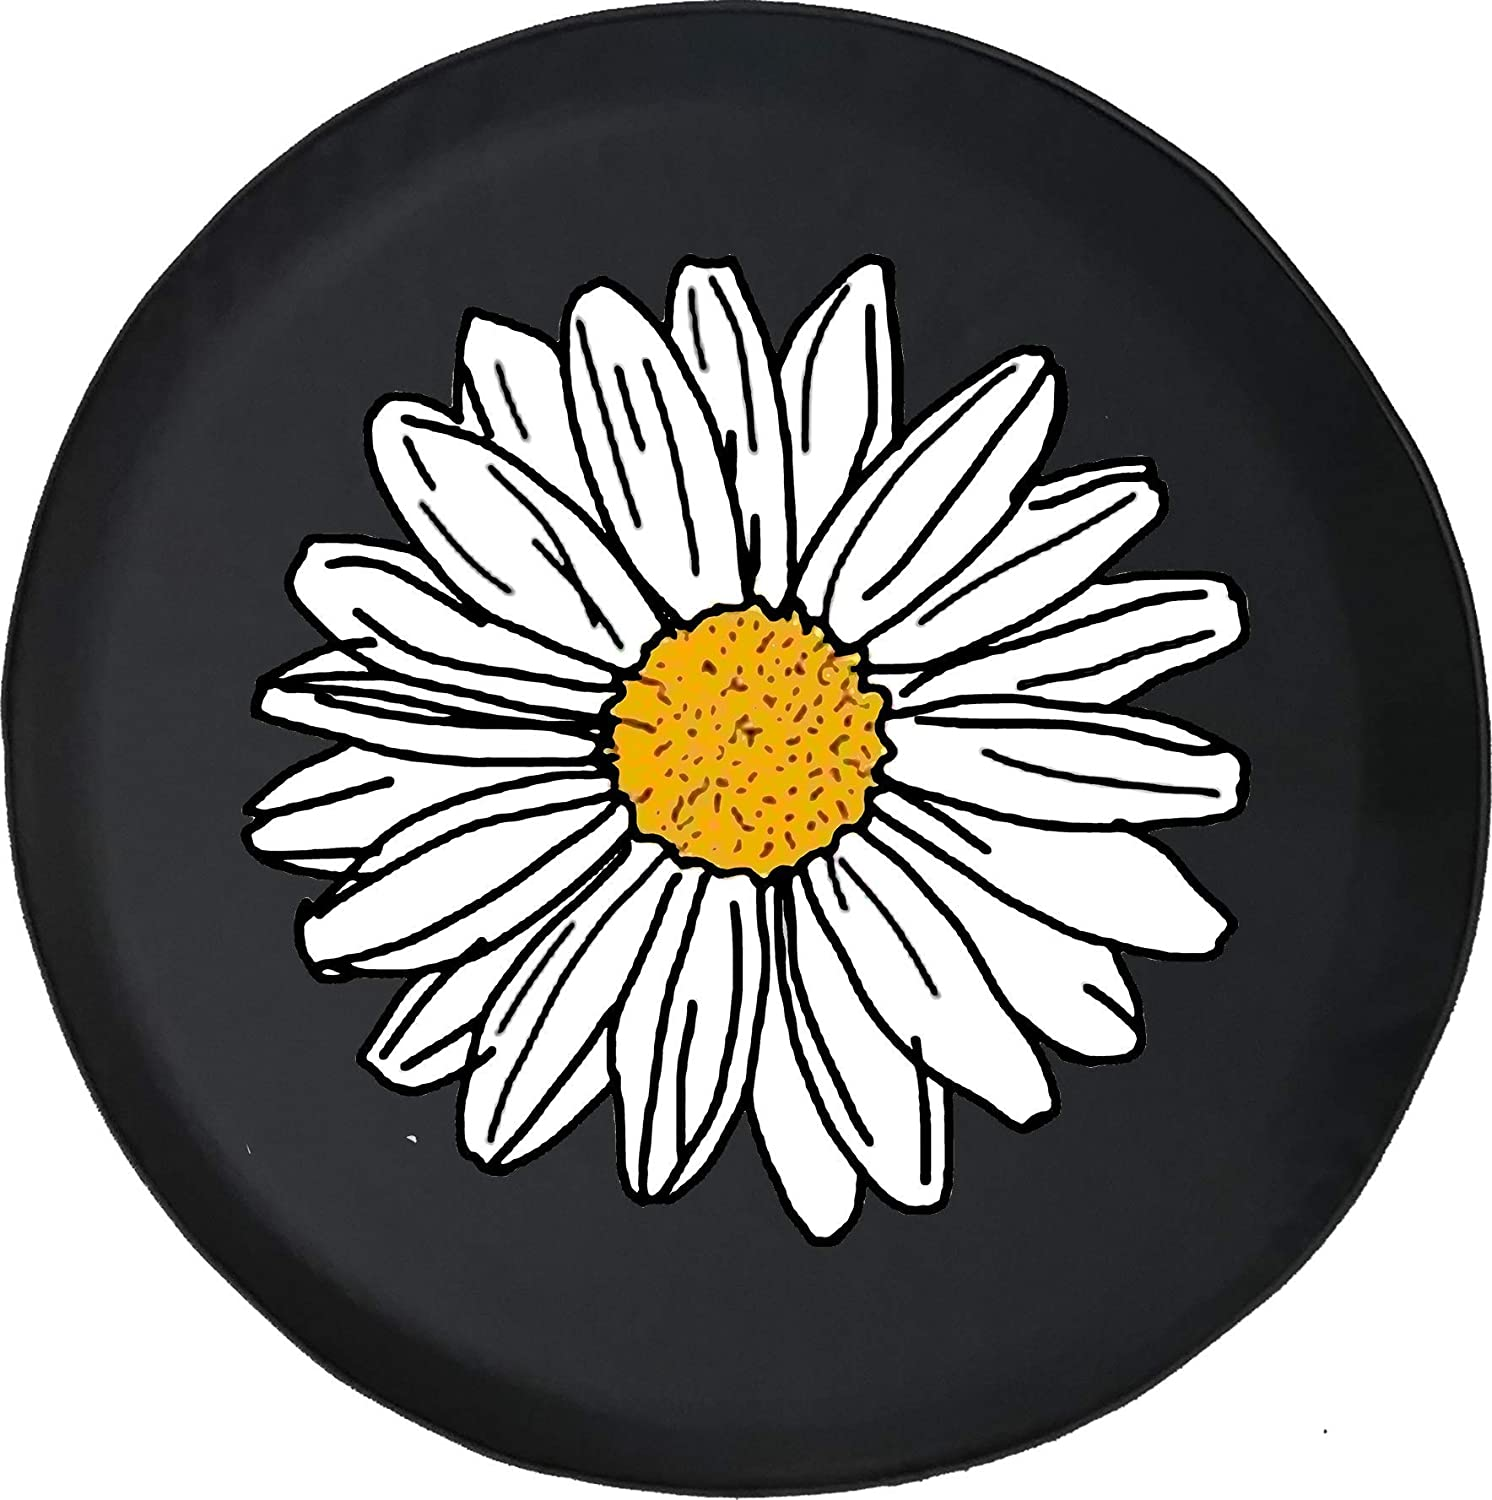 WASSUP Classic Smiley Daisy Tire Cover,Universal Dustproof and Waterproof Wheel Cover